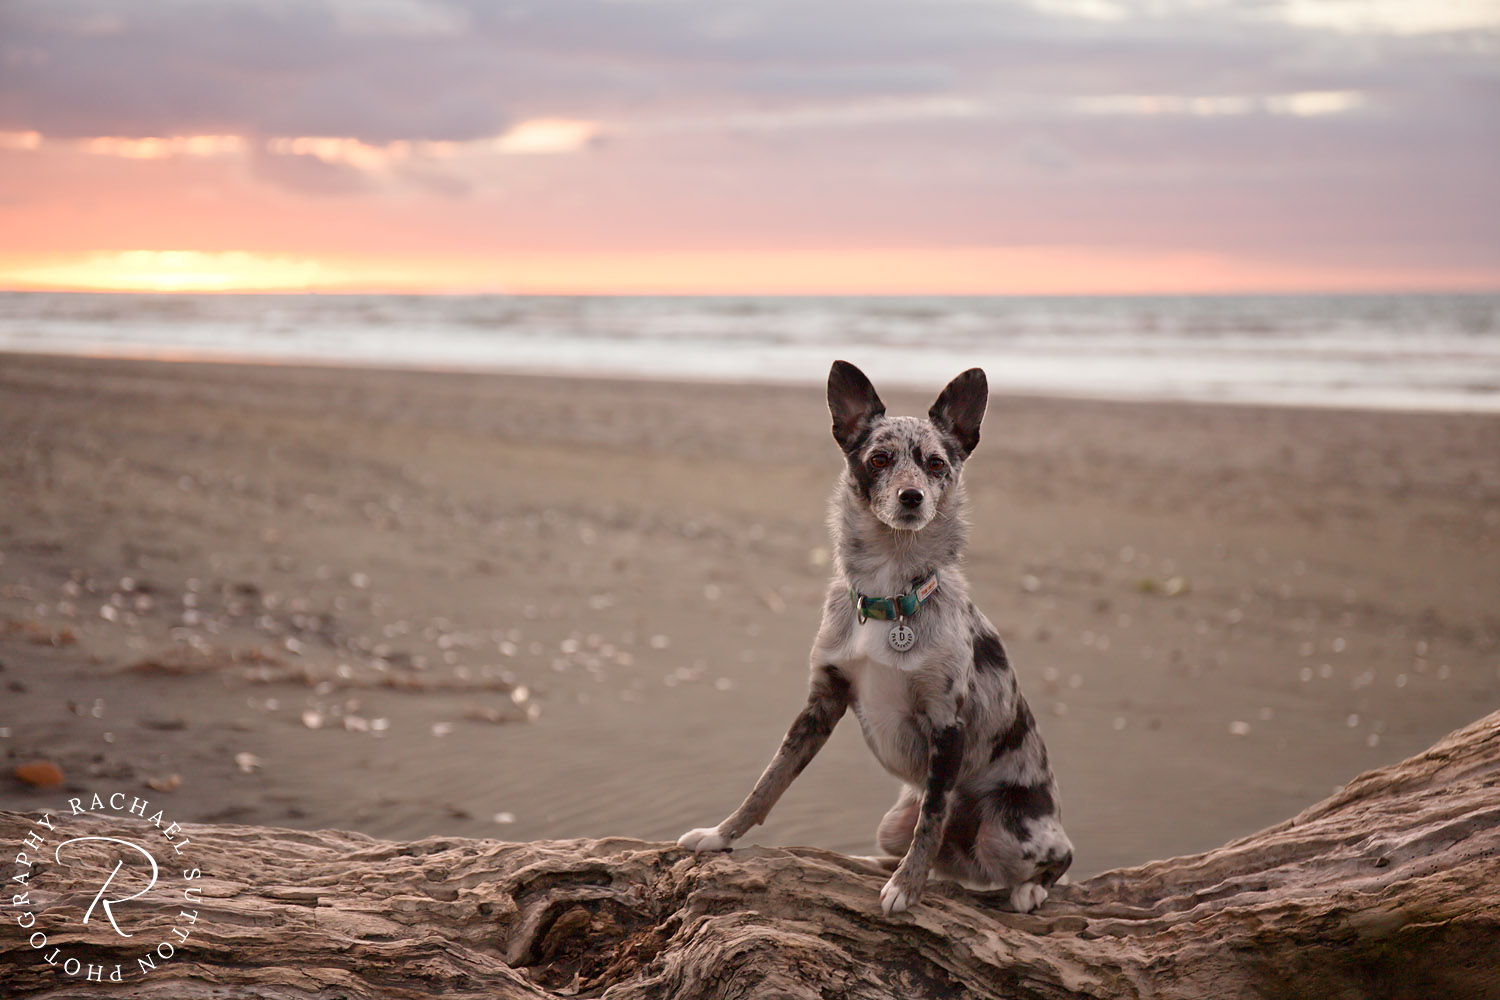 Dog, sitting on log at sunset on the beach, dog photo